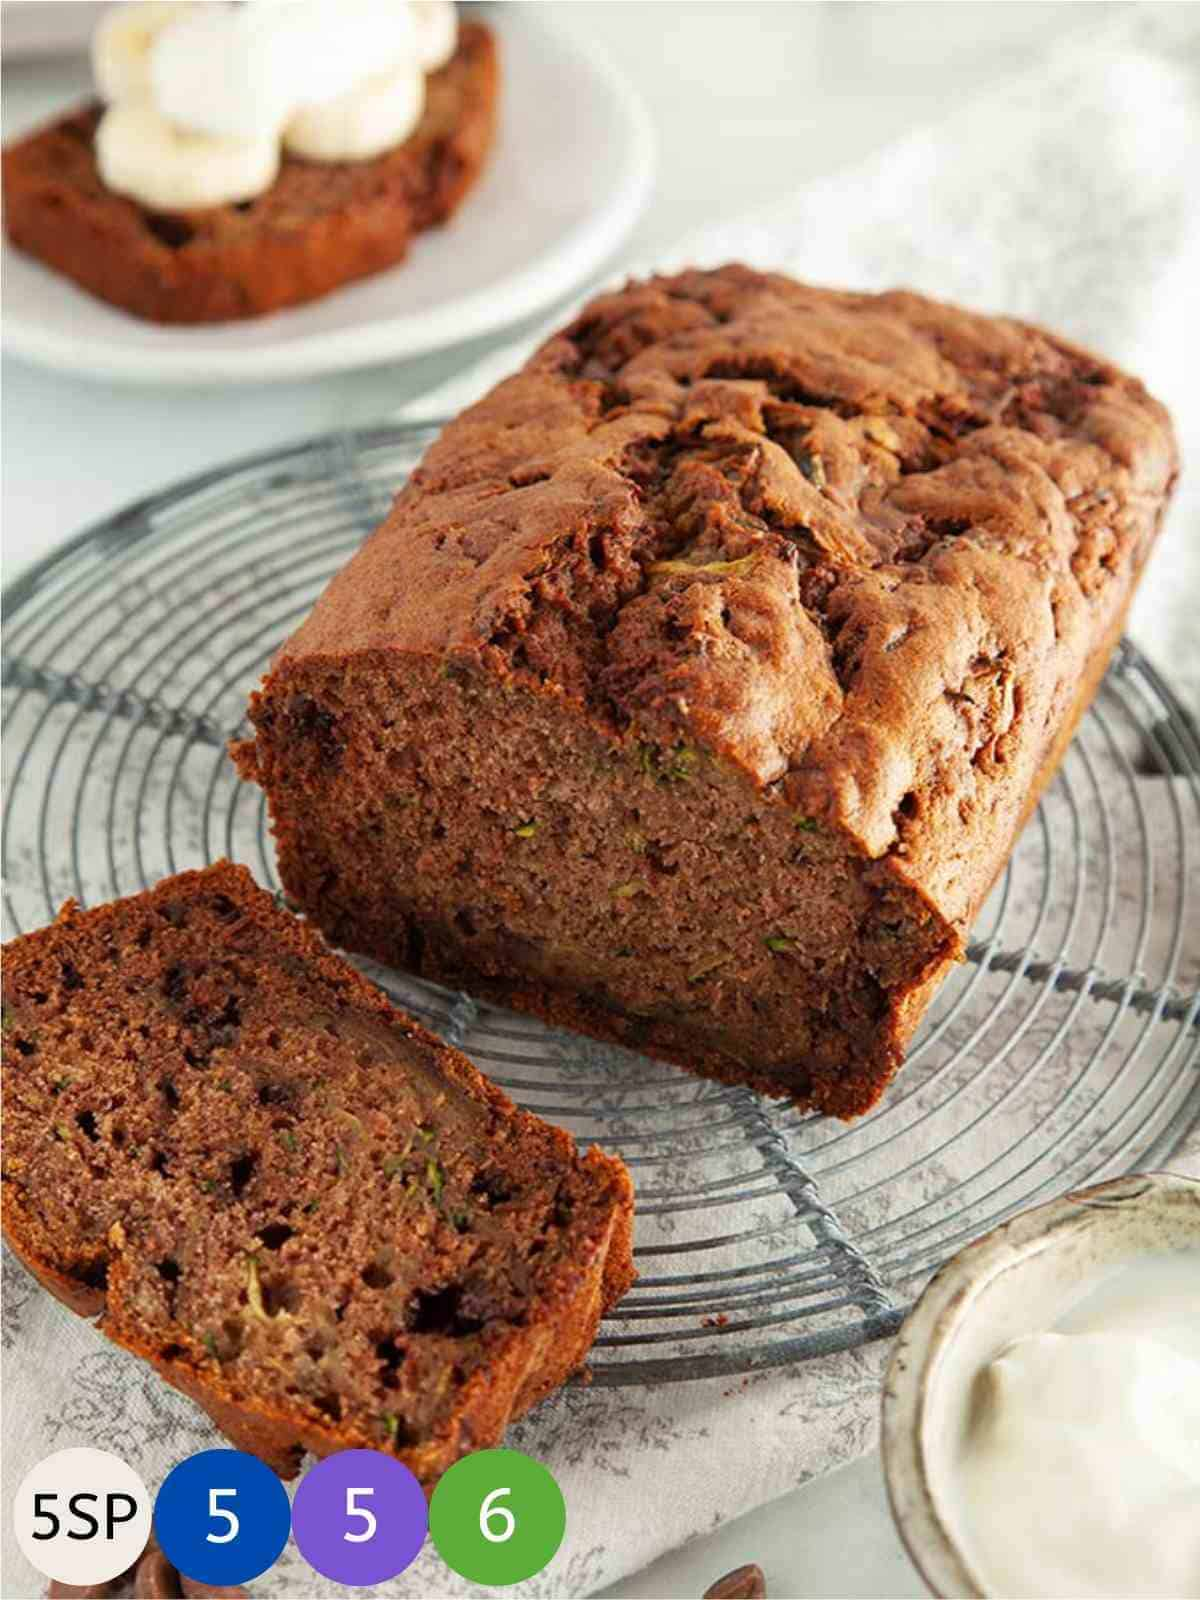 A chocolate chip zucchini bread loaf on a circular metal cooling rack